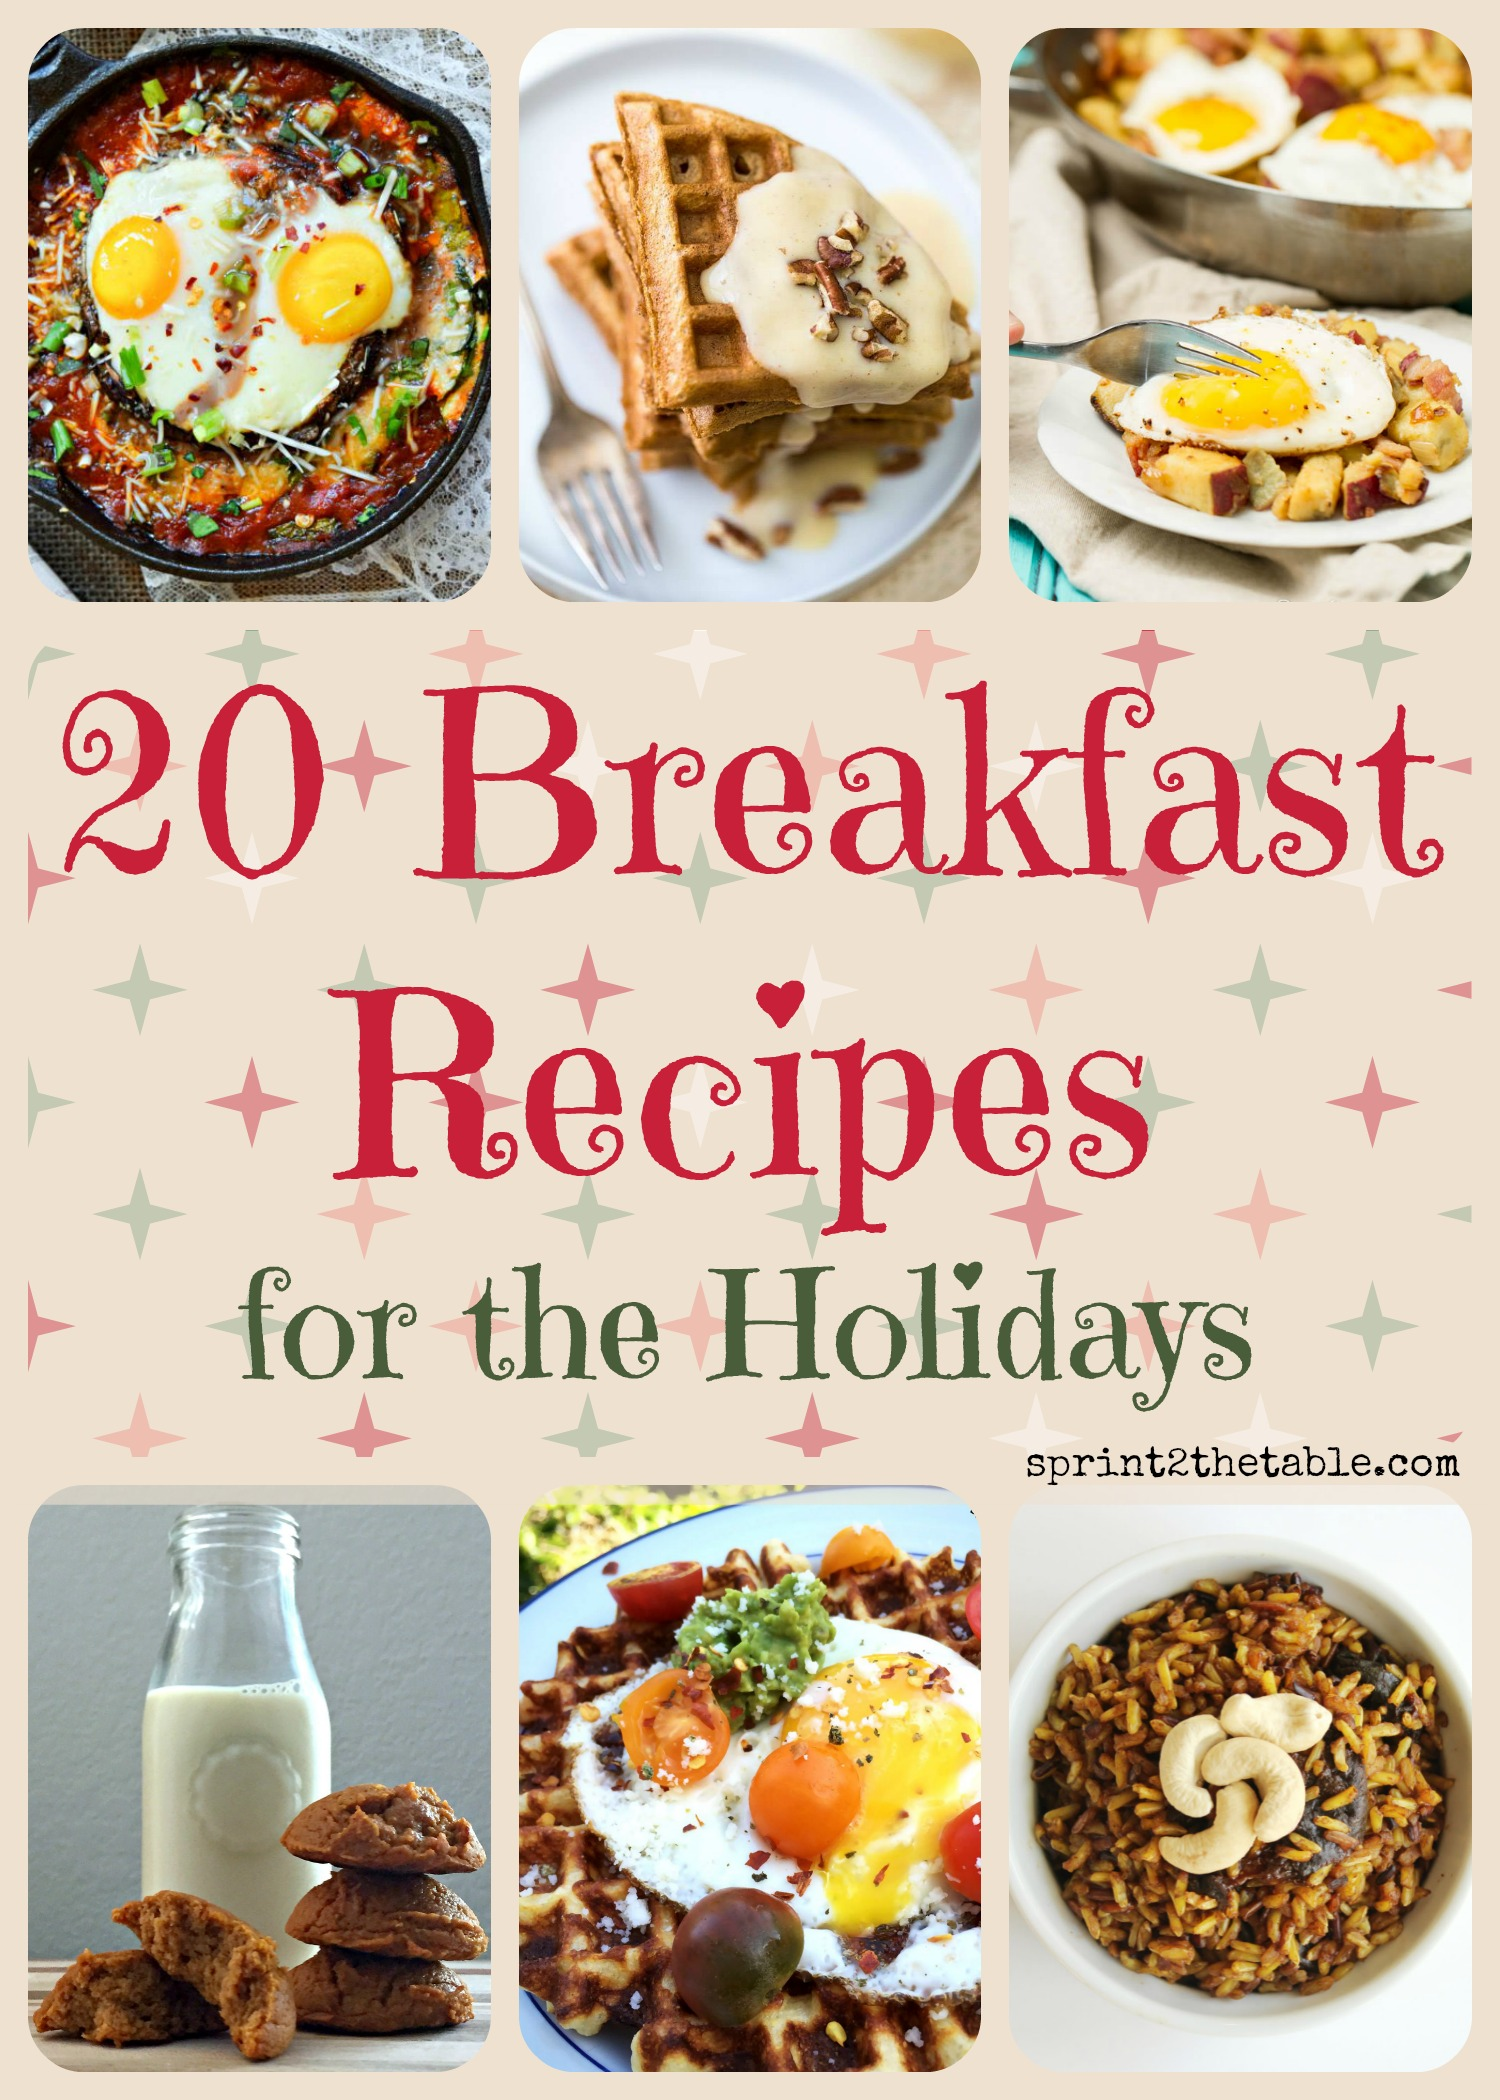 20 Breakfast Recipes for the Holidays